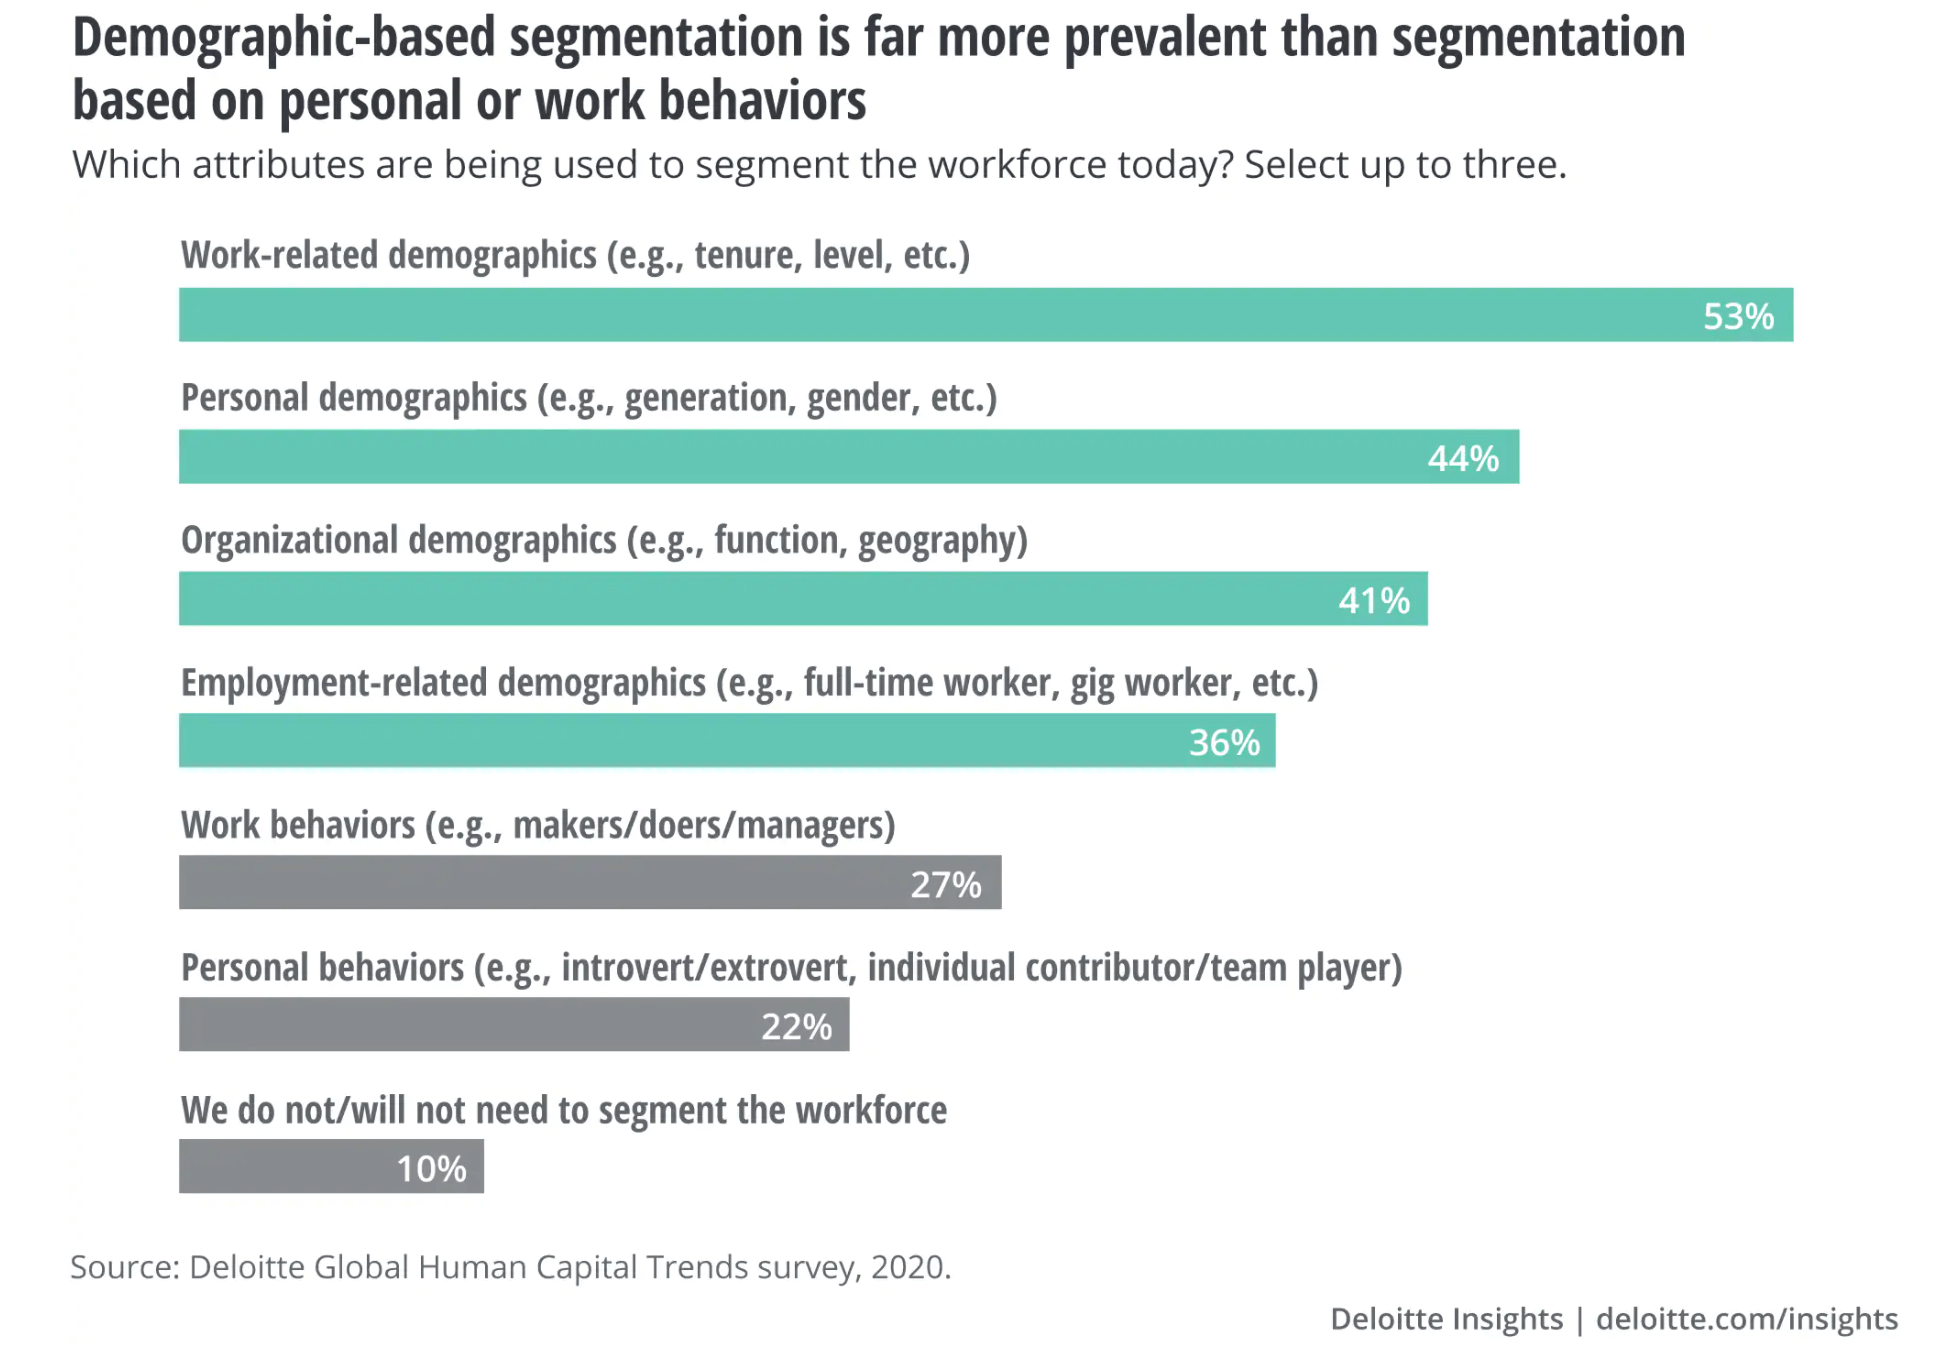 Workforce segmentation